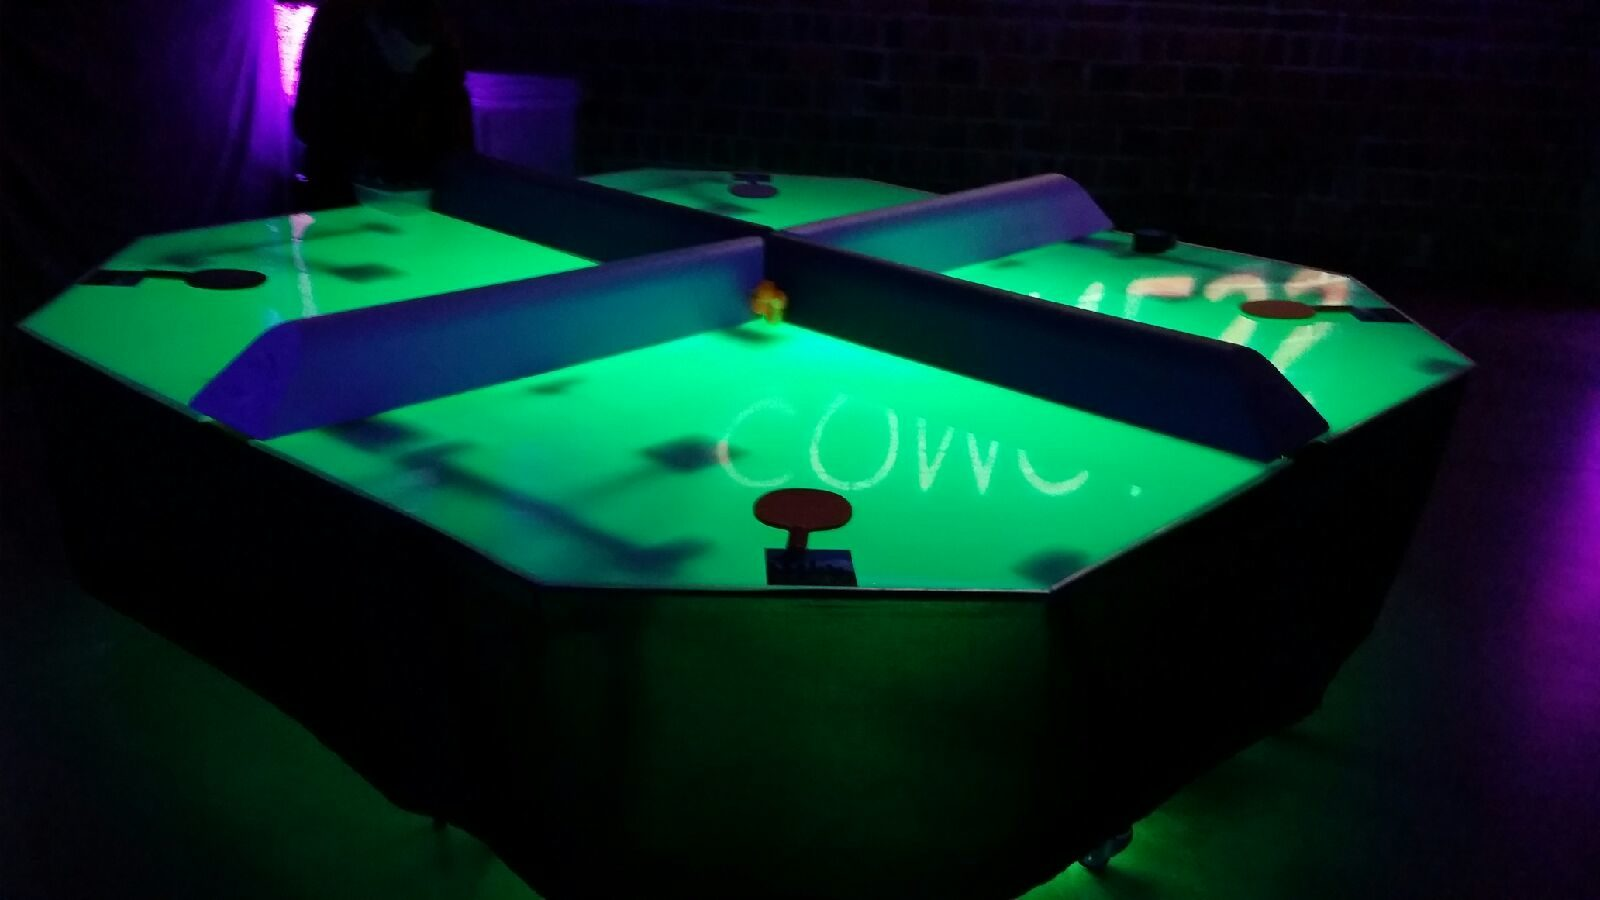 LED Poly Pong